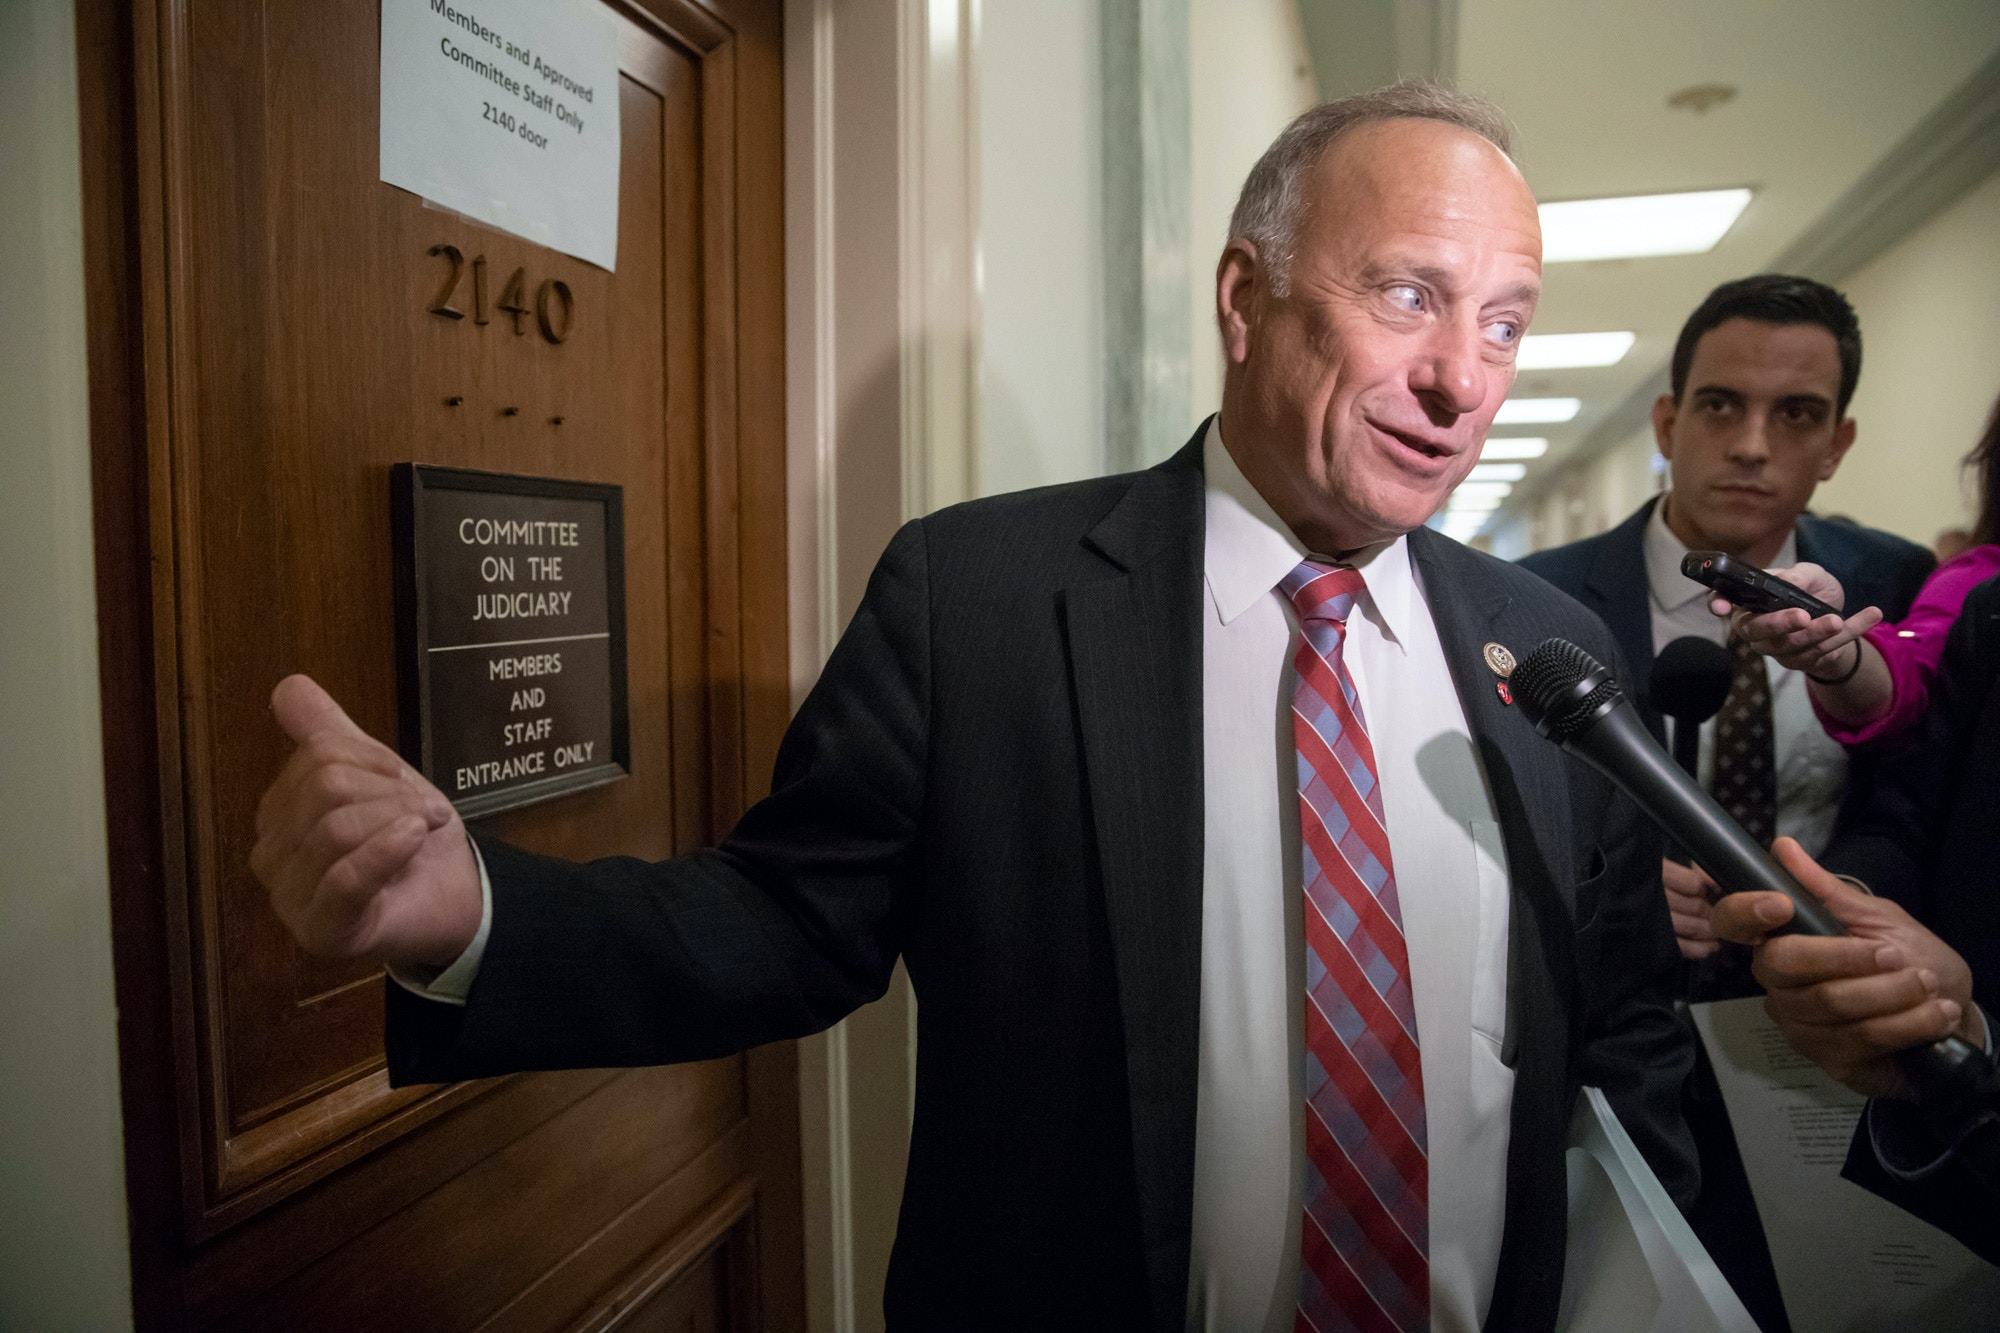 Rep. Steve King, R-Iowa, a member of the House Judiciary Committee, arrives for a closed-door interview with Peter Strzok, the FBI agent facing criticism following a series of anti-Trump text messages, on Capitol Hill in Washington, Wednesday, June 27, 2018. (AP Photo/J. Scott Applewhite)